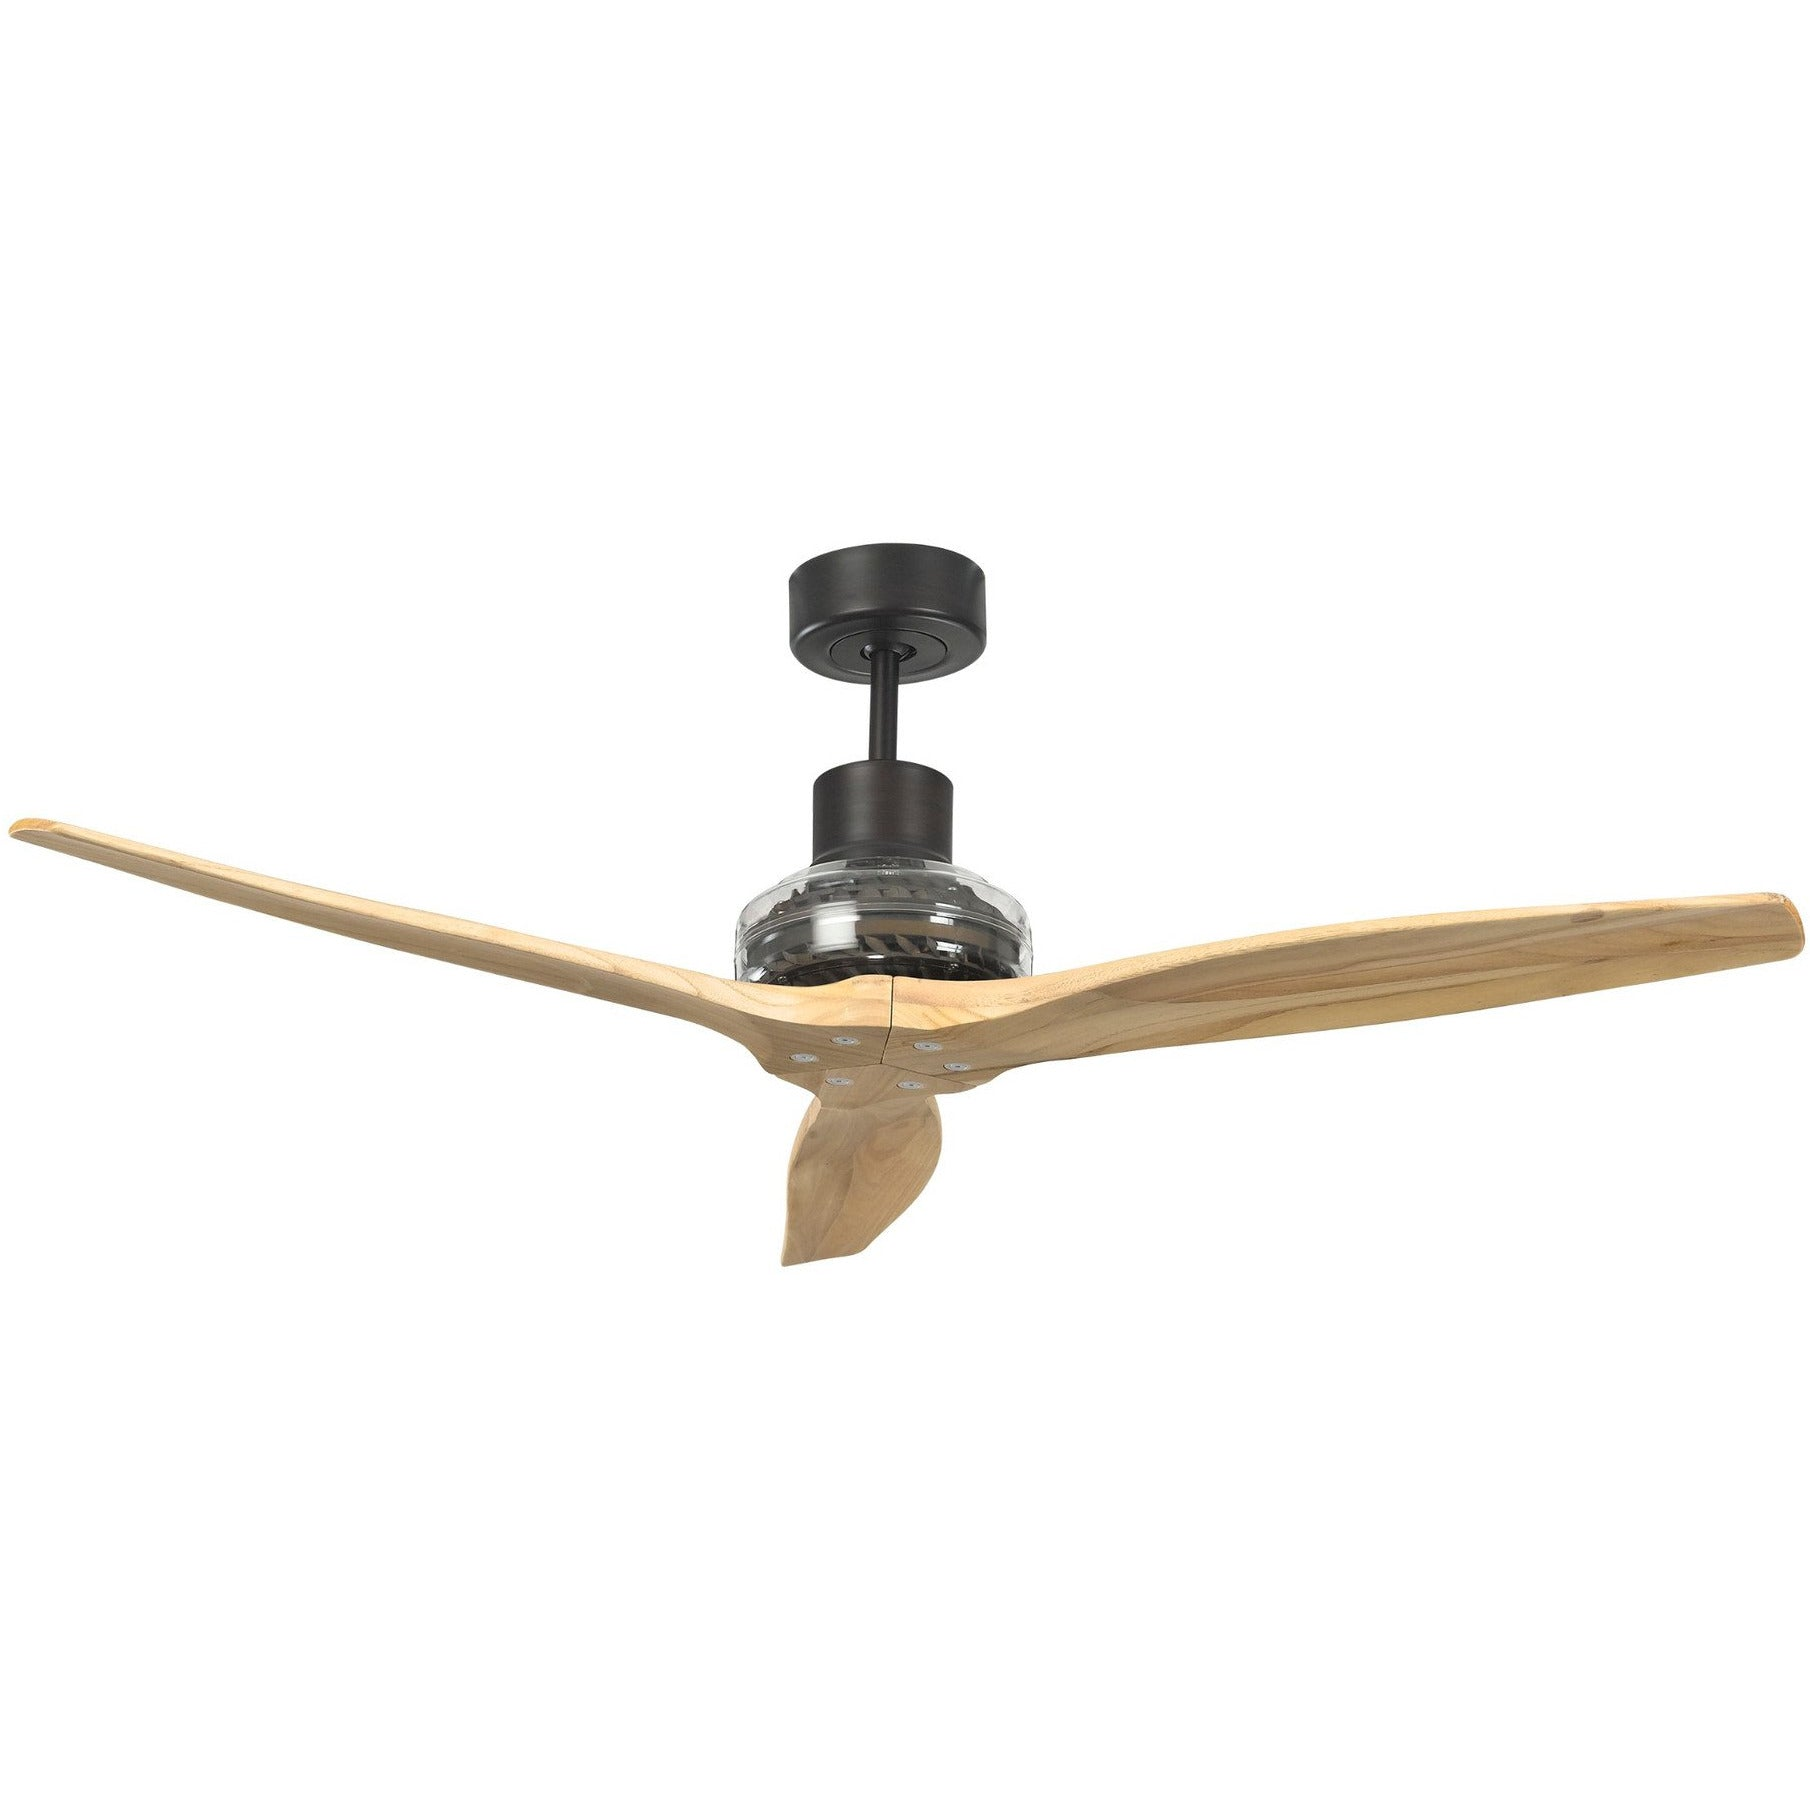 Design your ceiling fan venge star propeller ceiling fan motor aloadofball Image collections